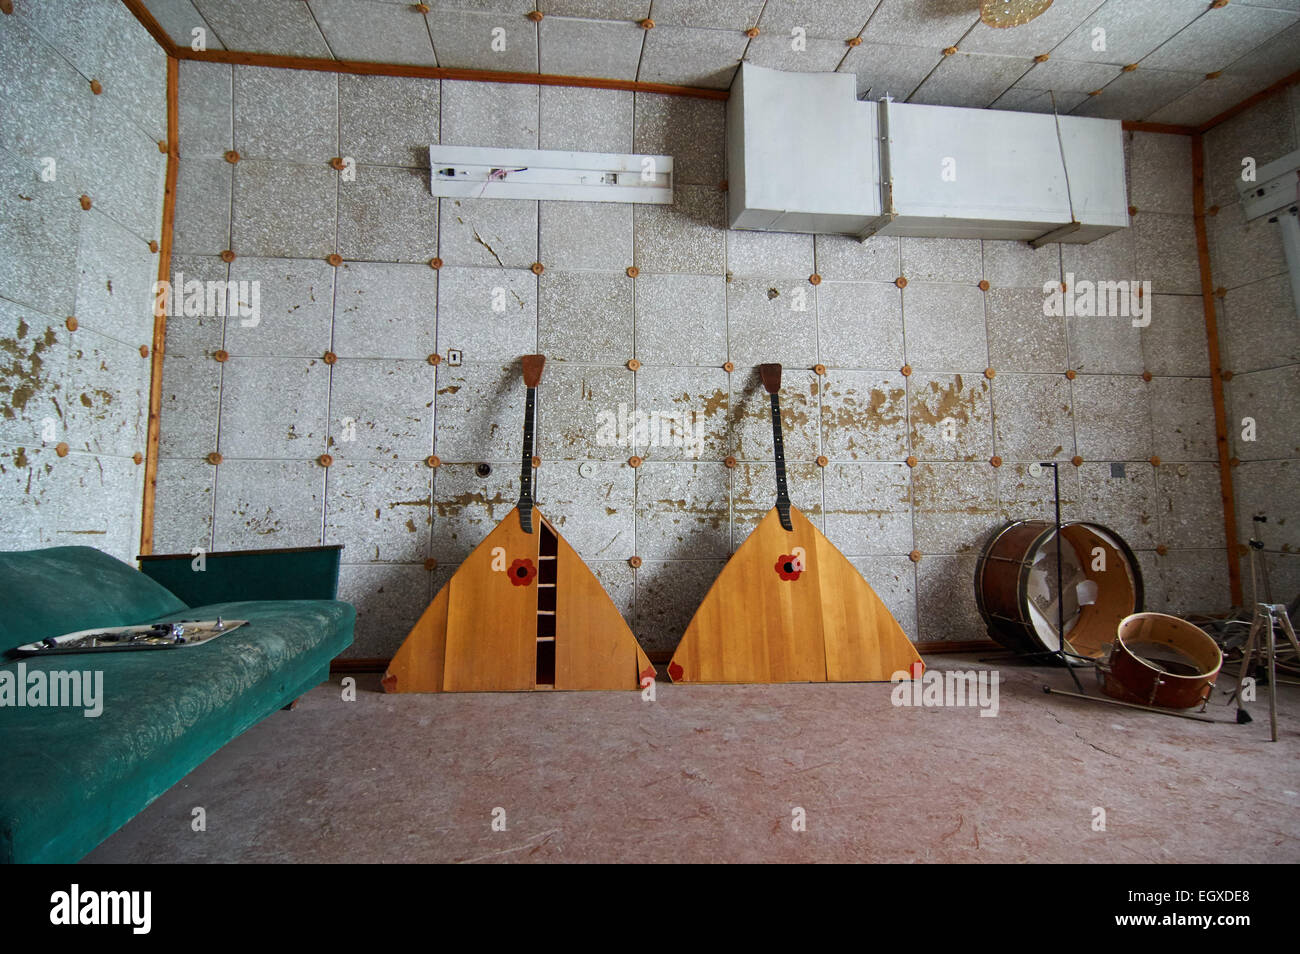 From the Russian settlement Pyramiden, Svalbard. Abandoned in 1998. - Stock Image